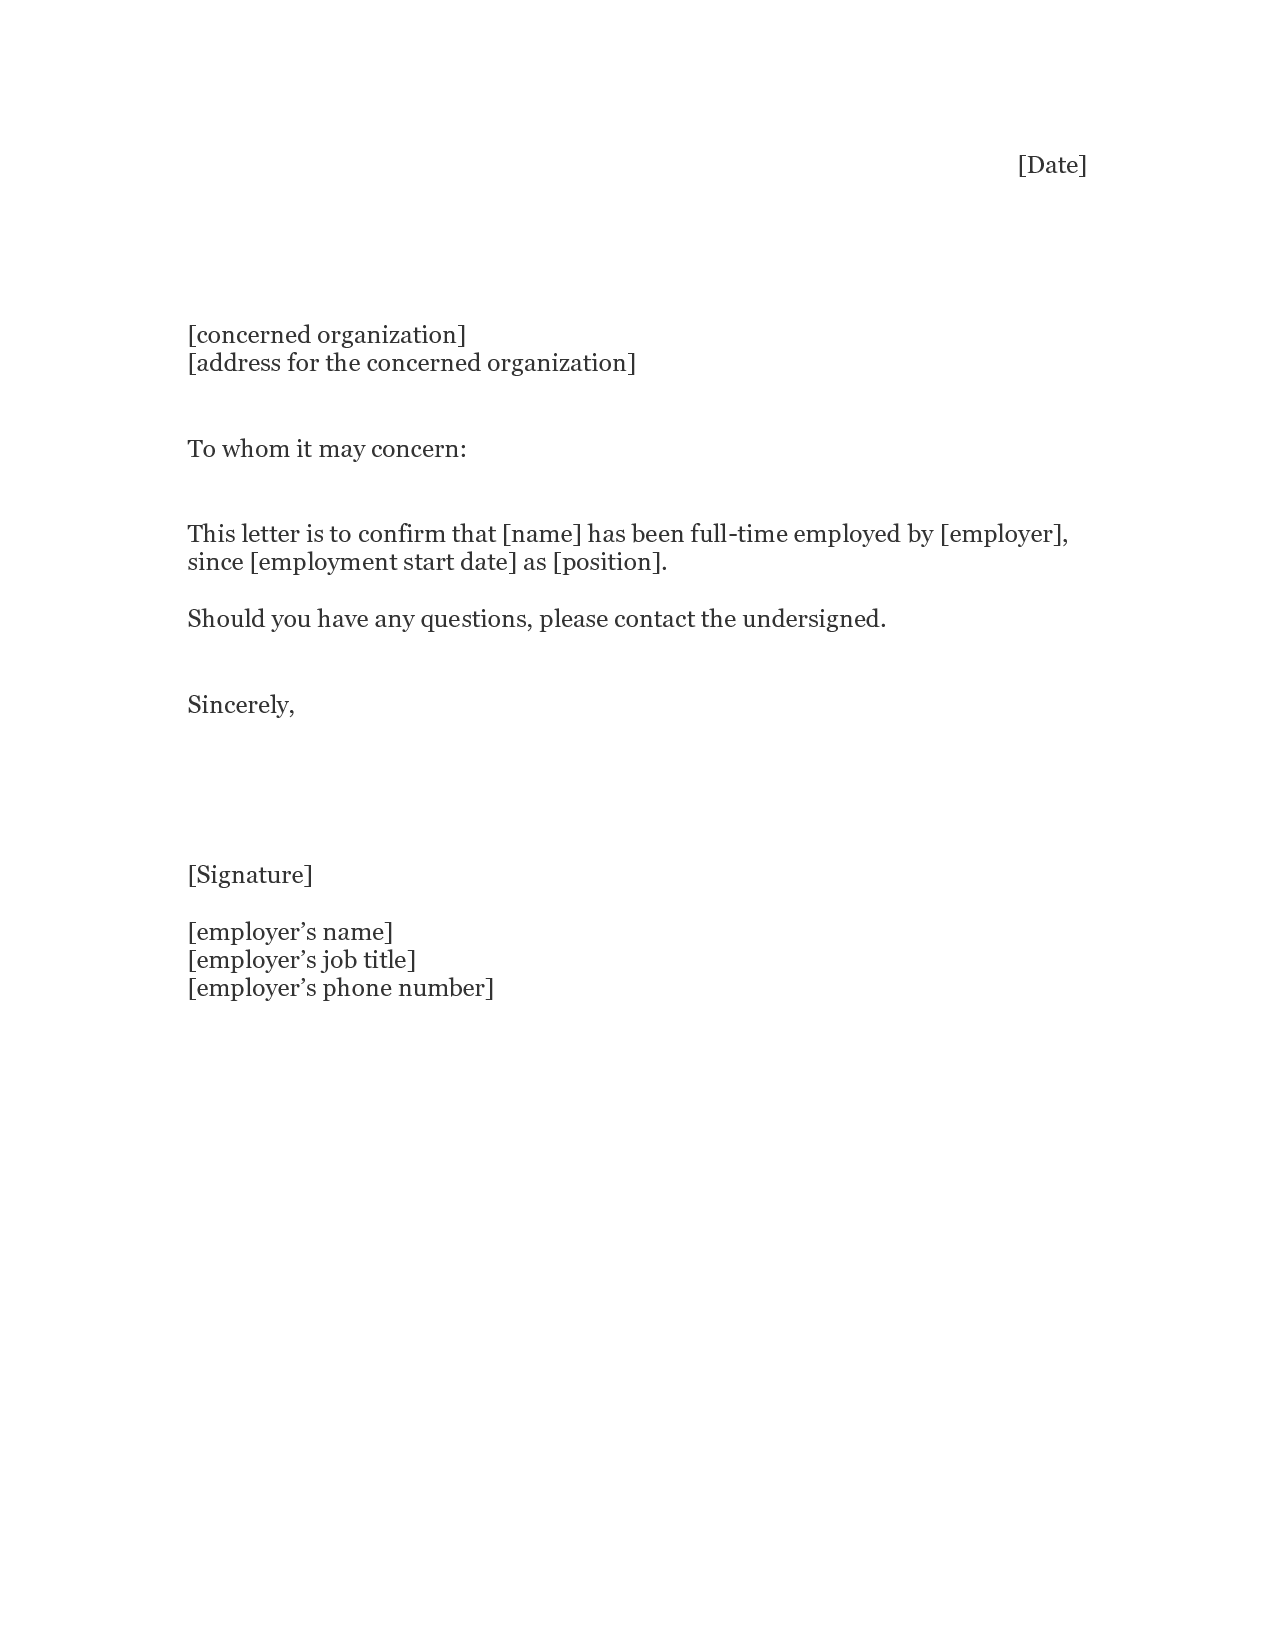 to whom it may concern letter sample for address proof to whom it – Samples of Employment Verification Letters